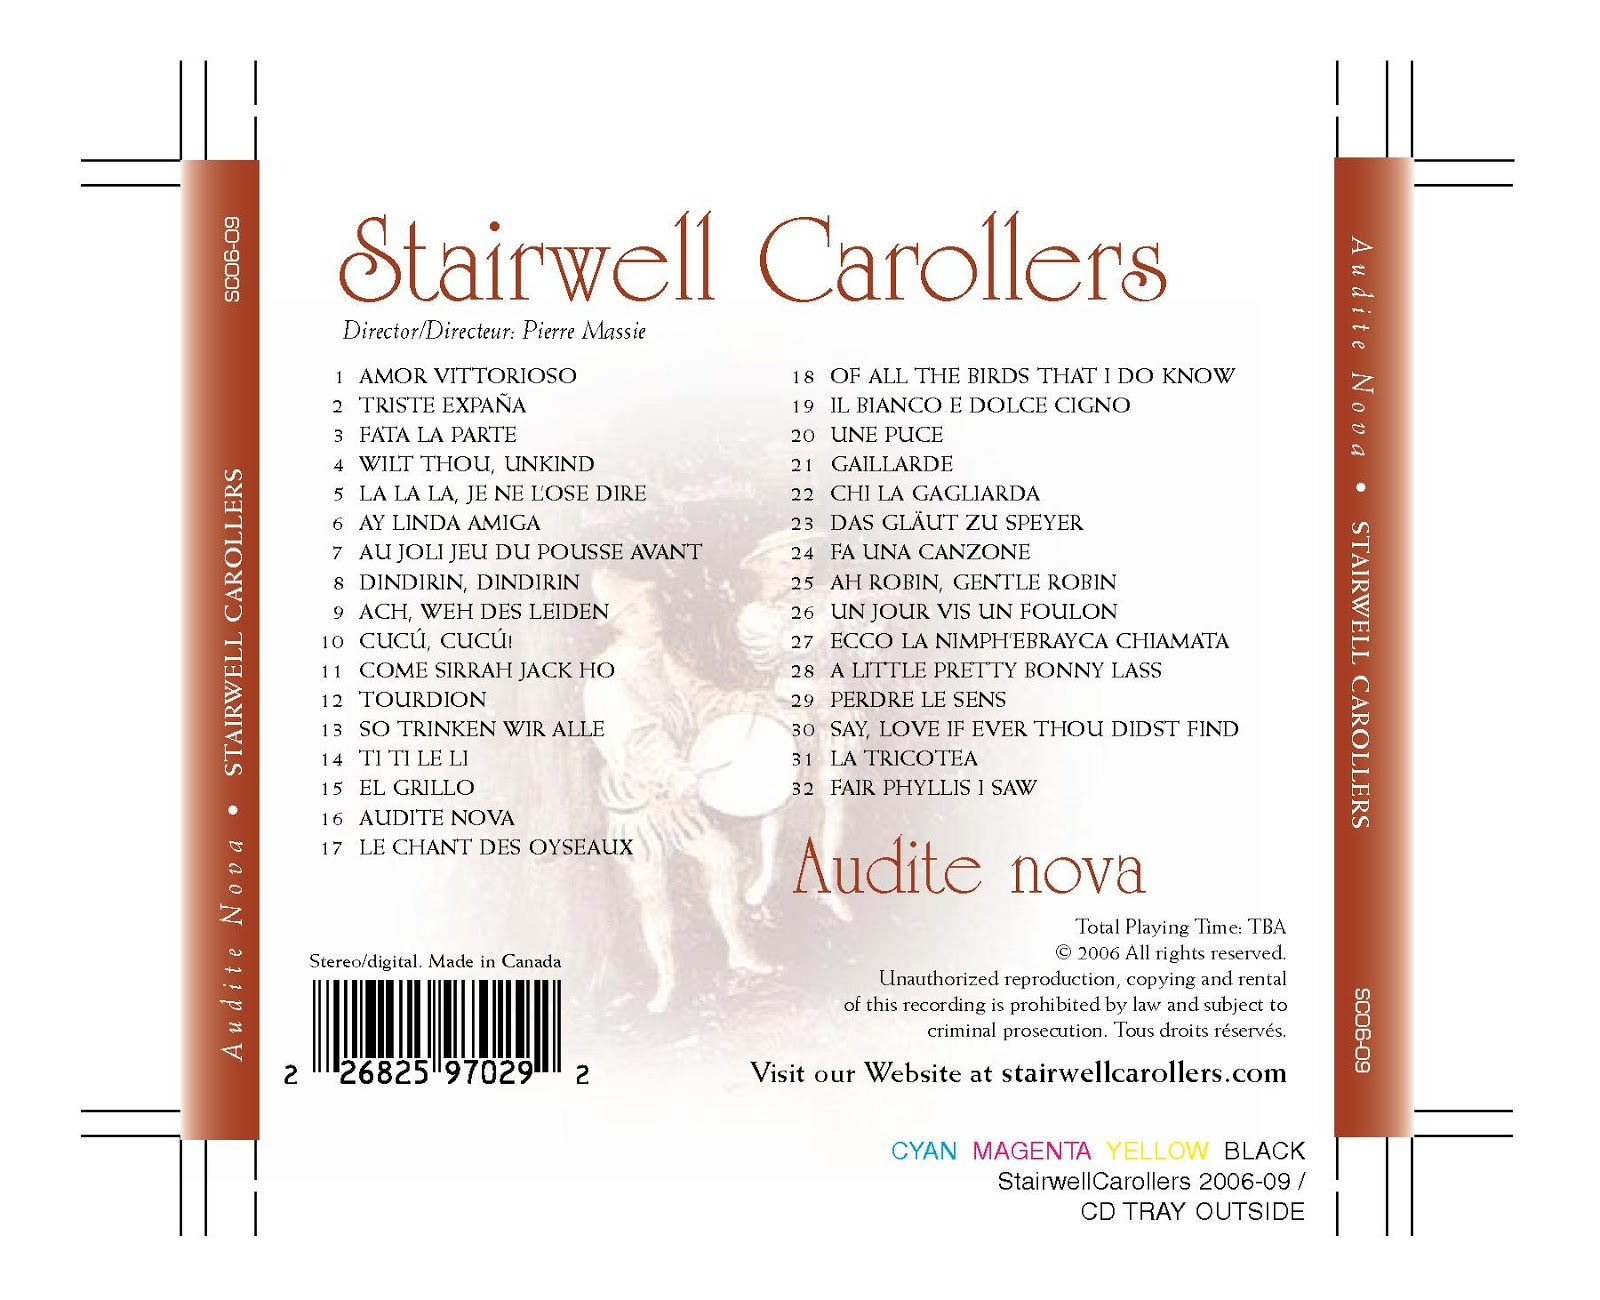 Stairwell Carollers Audite Nova Madrigal CD Song List